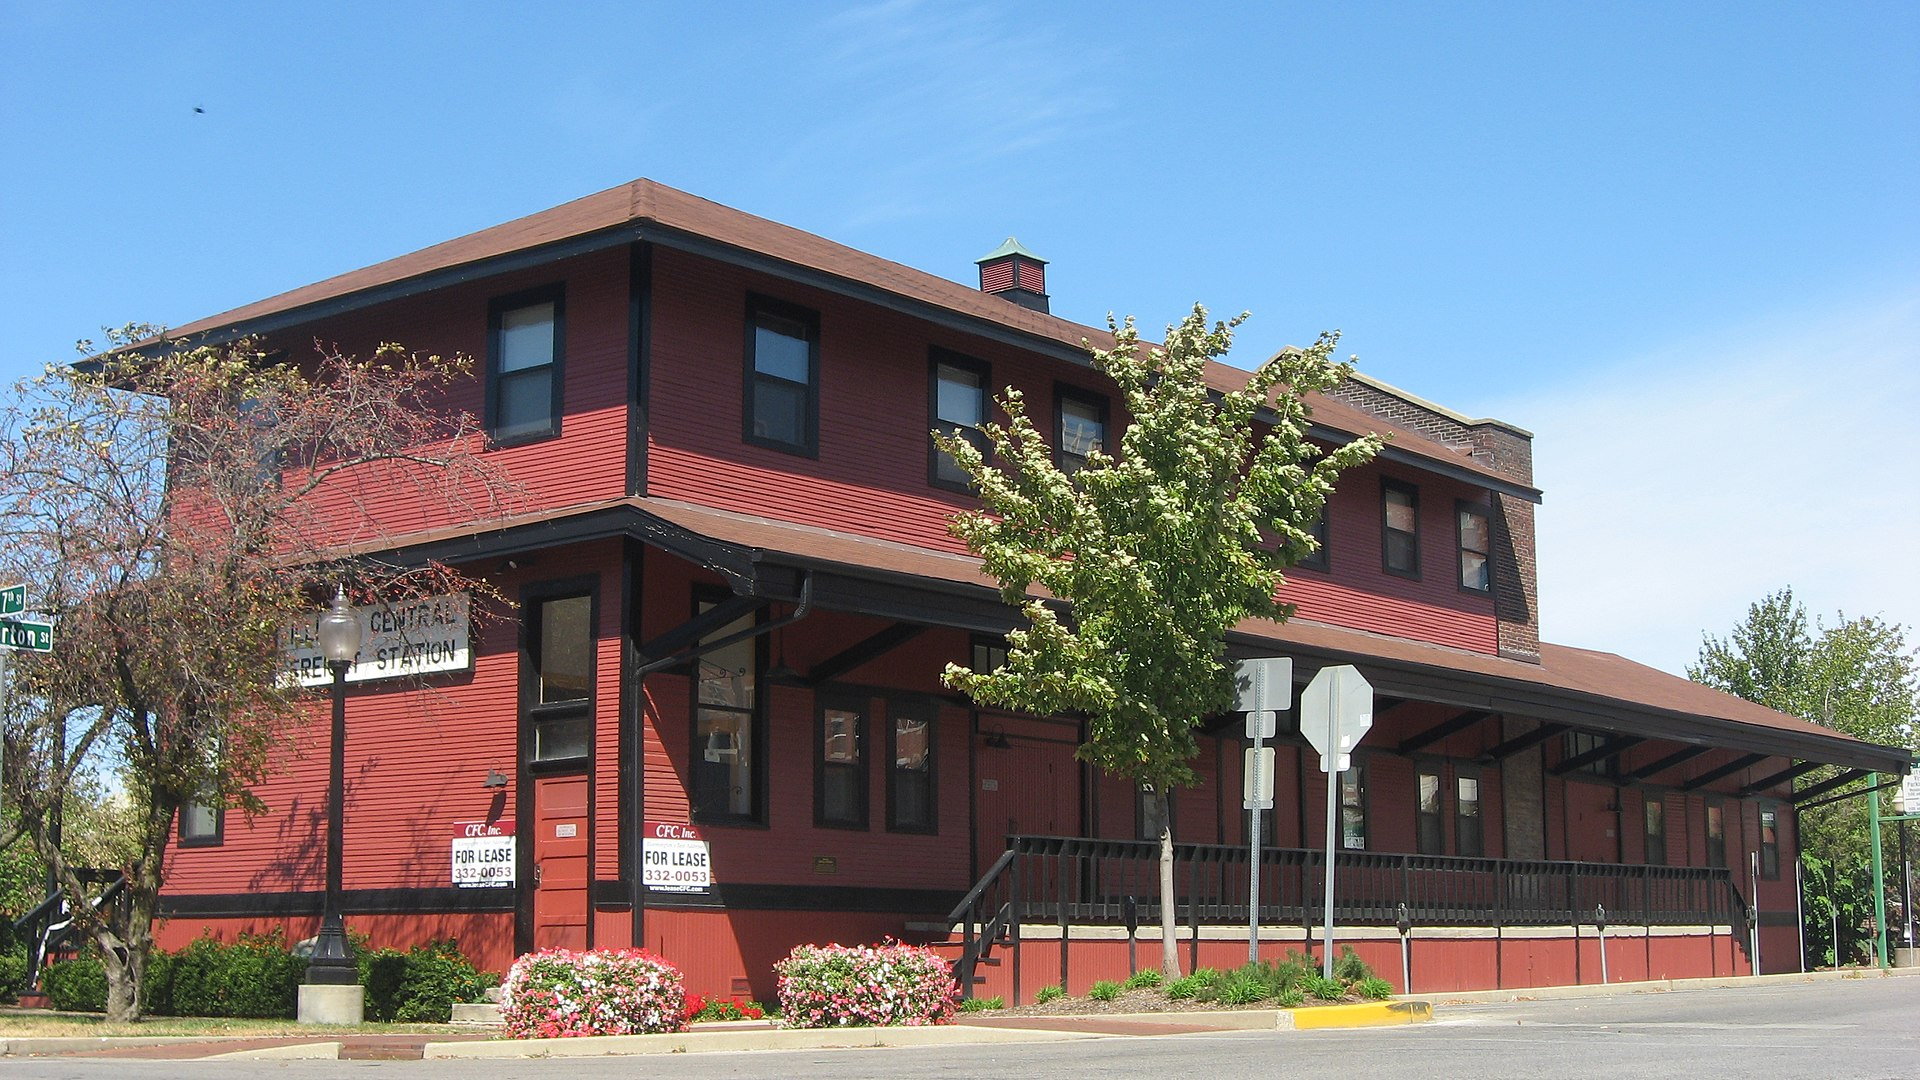 The Illinois Central Railroad Freight Depot was built in 1906 and operated until 1963.